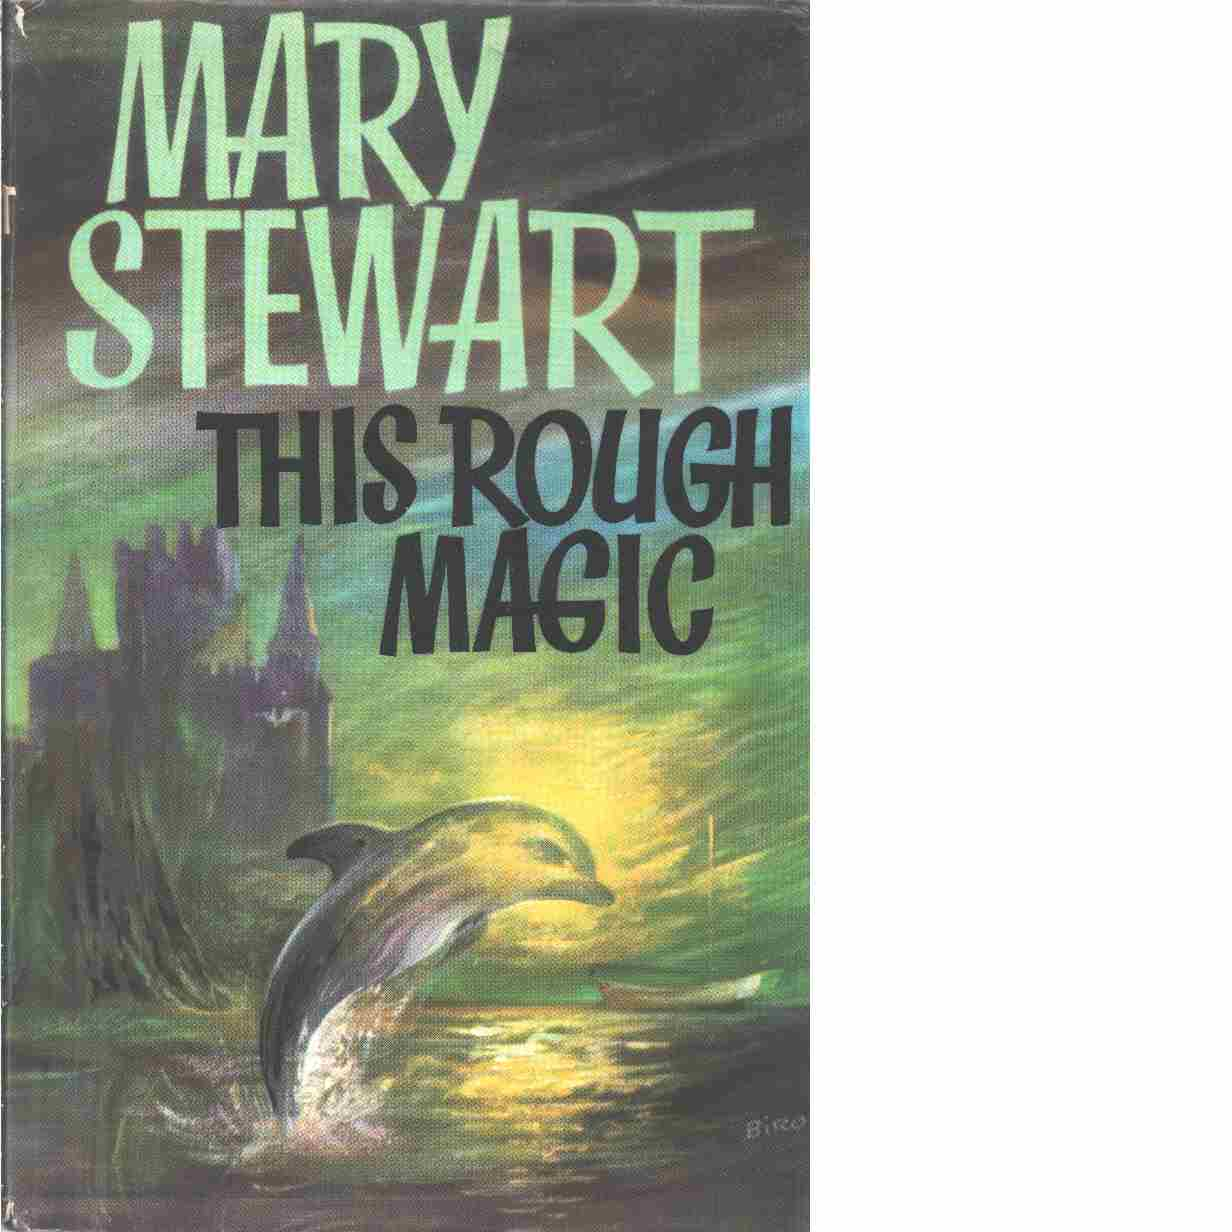 This Rough Magic - Stewart, Mary